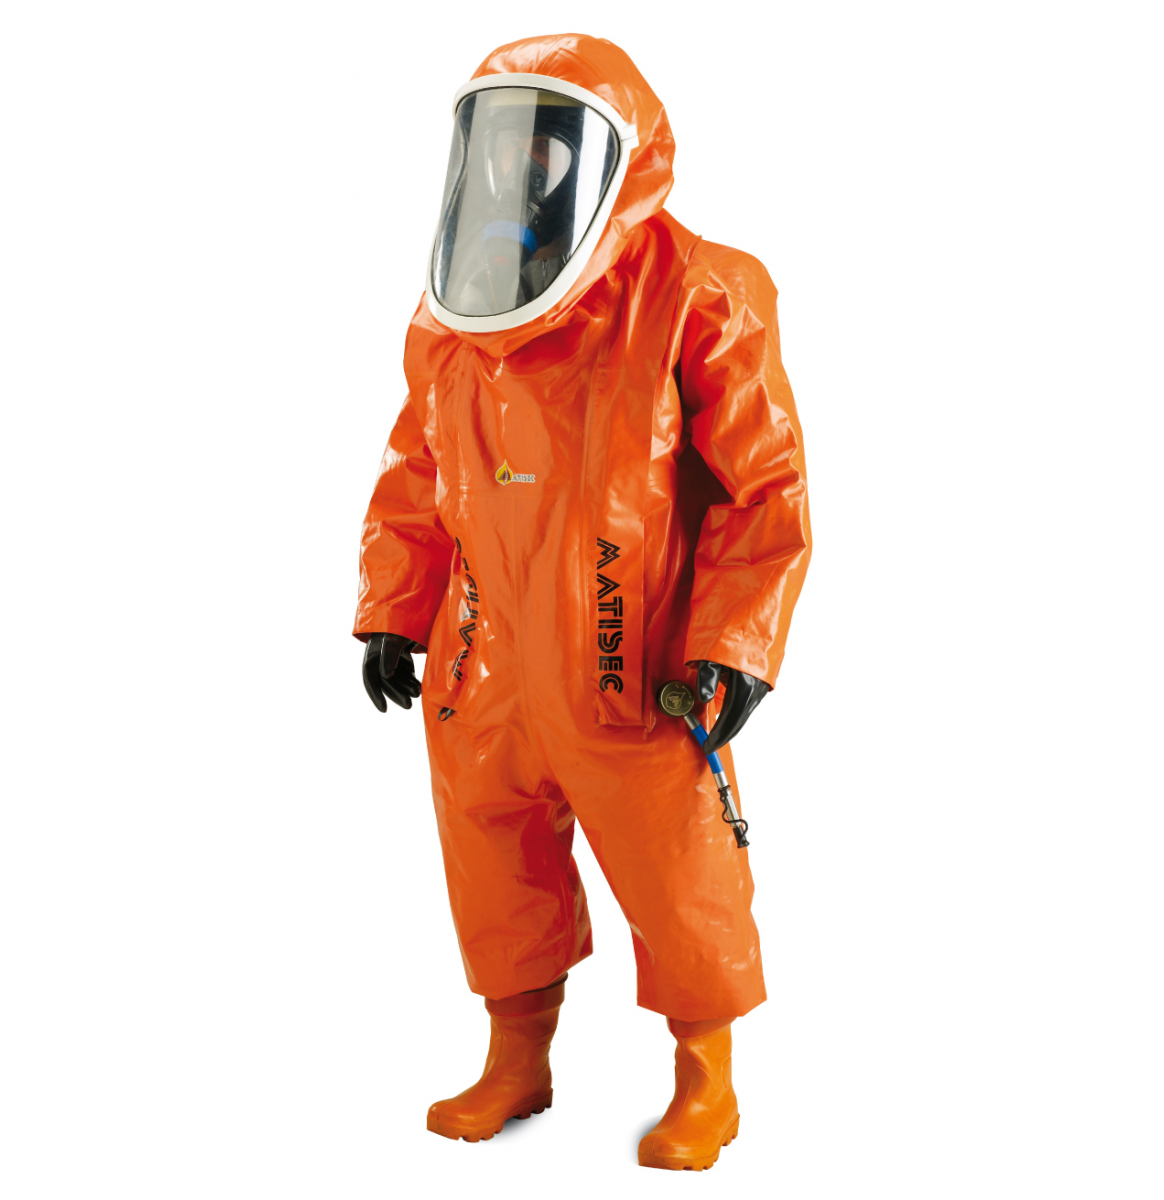 Ki Gv Suit Http Www Matisec Com Products Services Chemical Protection Chemical Protective Suits Ki Gv Space Suit Hazmat Suit Battle Suit